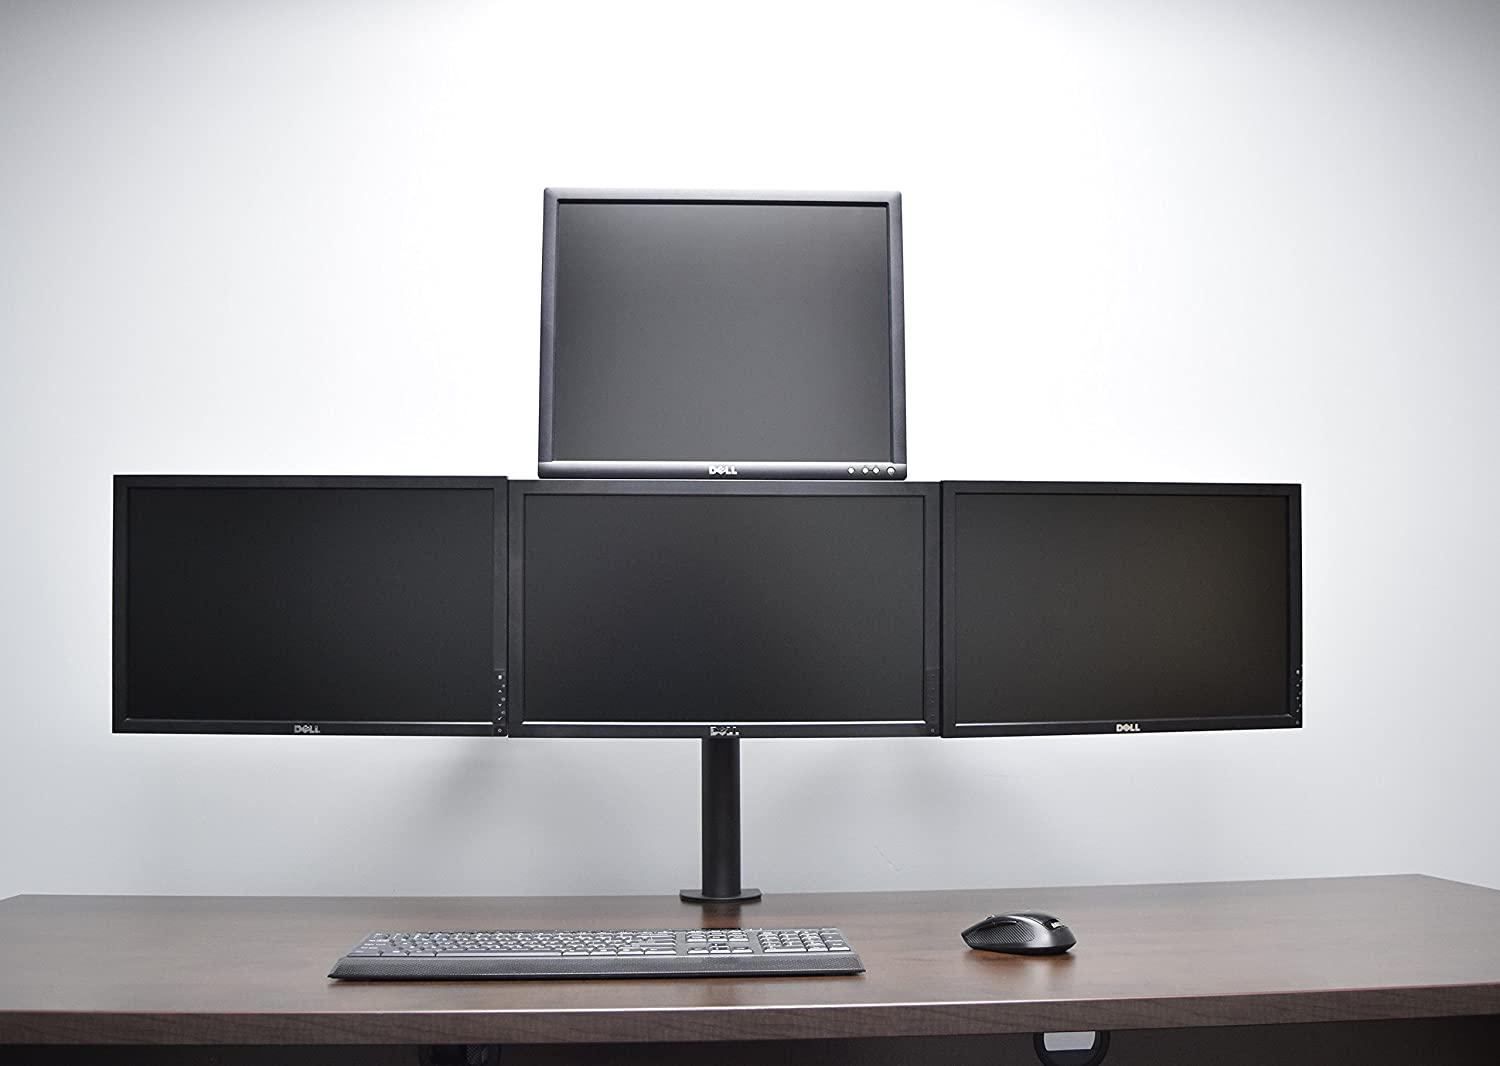 Amazon com vivo triple lcd monitor desk mount stand heavy duty fully - Amazon Com Vivo Quad Lcd Monitor Heavy Duty Desk Mount 3 1 Stand Holds Four Screens Up To 24 Each Stand V004c Computers Accessories